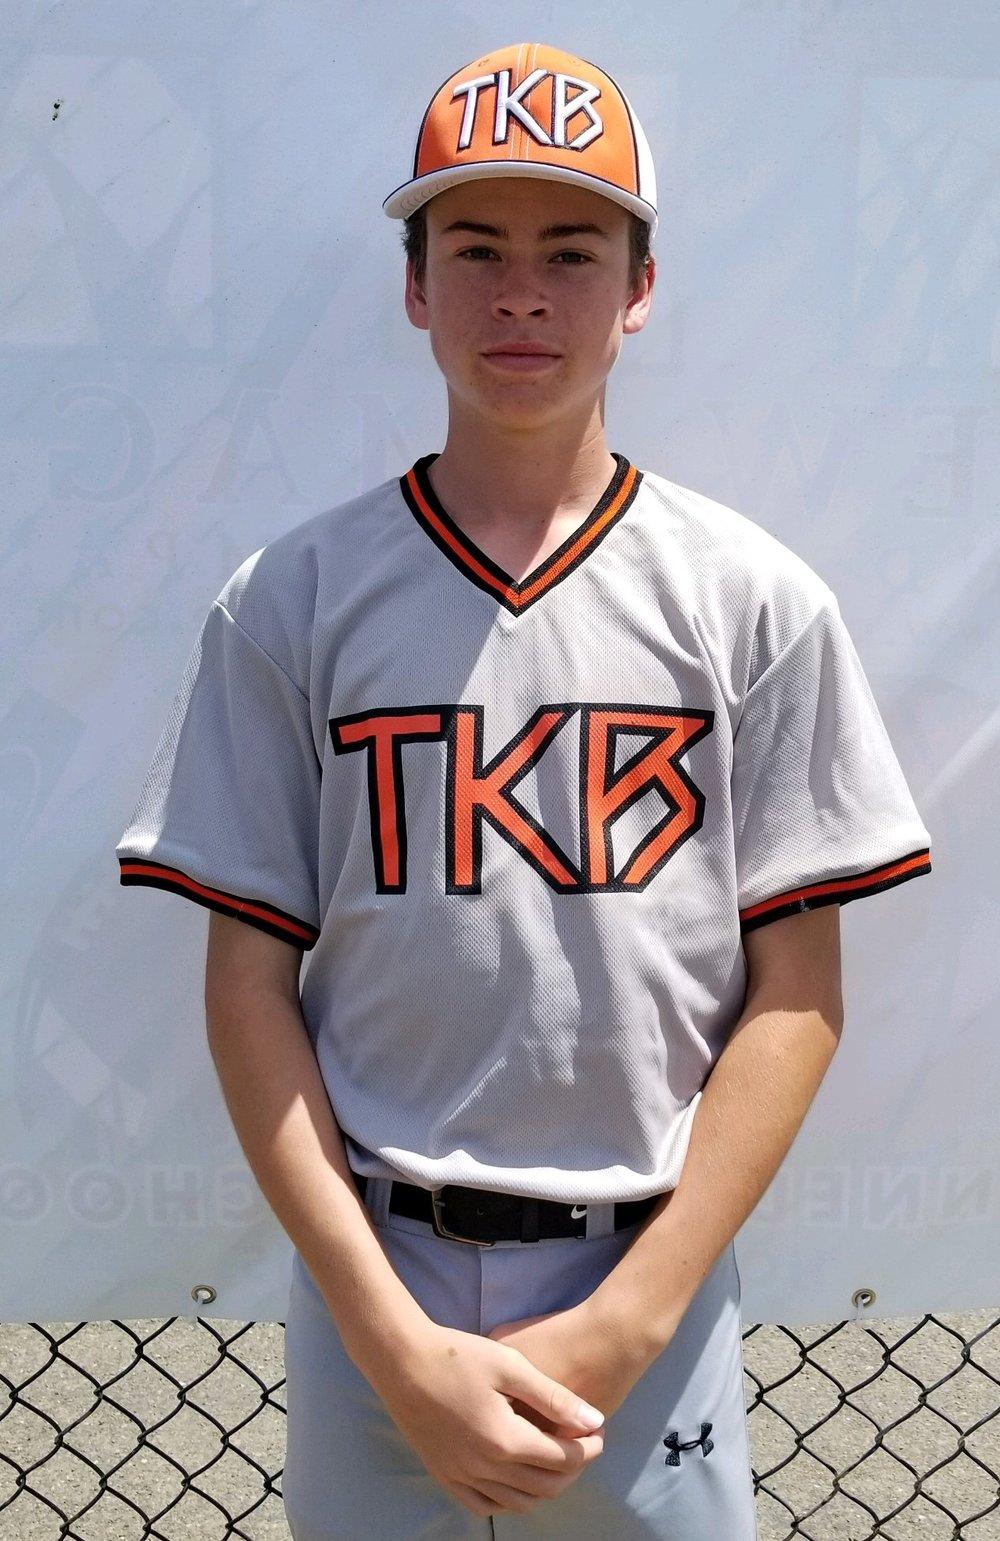 - TYLER SEALAge: 15Class of 2021, Monterey High School Position: Pitcher/OFHeight: Weight: